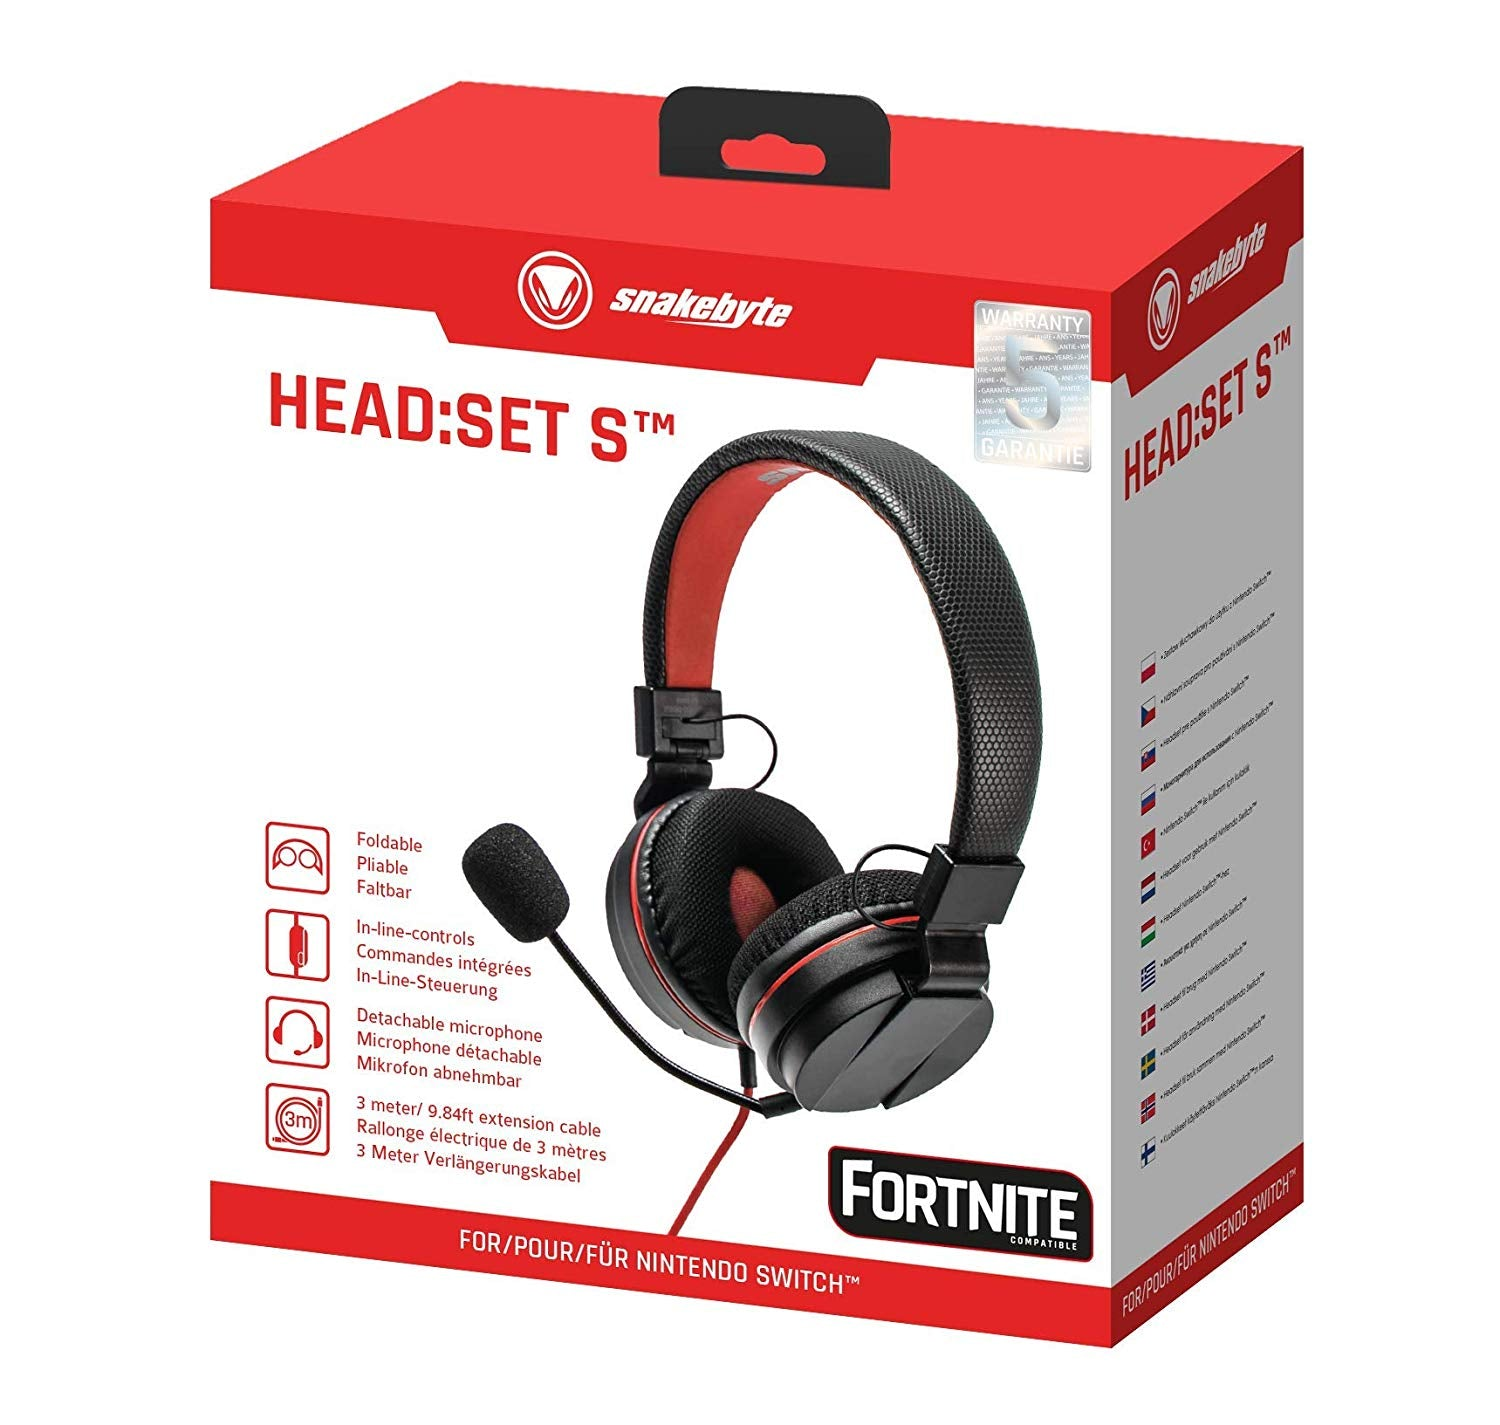 Snakebyte Headset S Stereo for use with Nintendo Switch, Nintendo Switch Headset, DVDMEGASTORE, DVDMEGASTORE